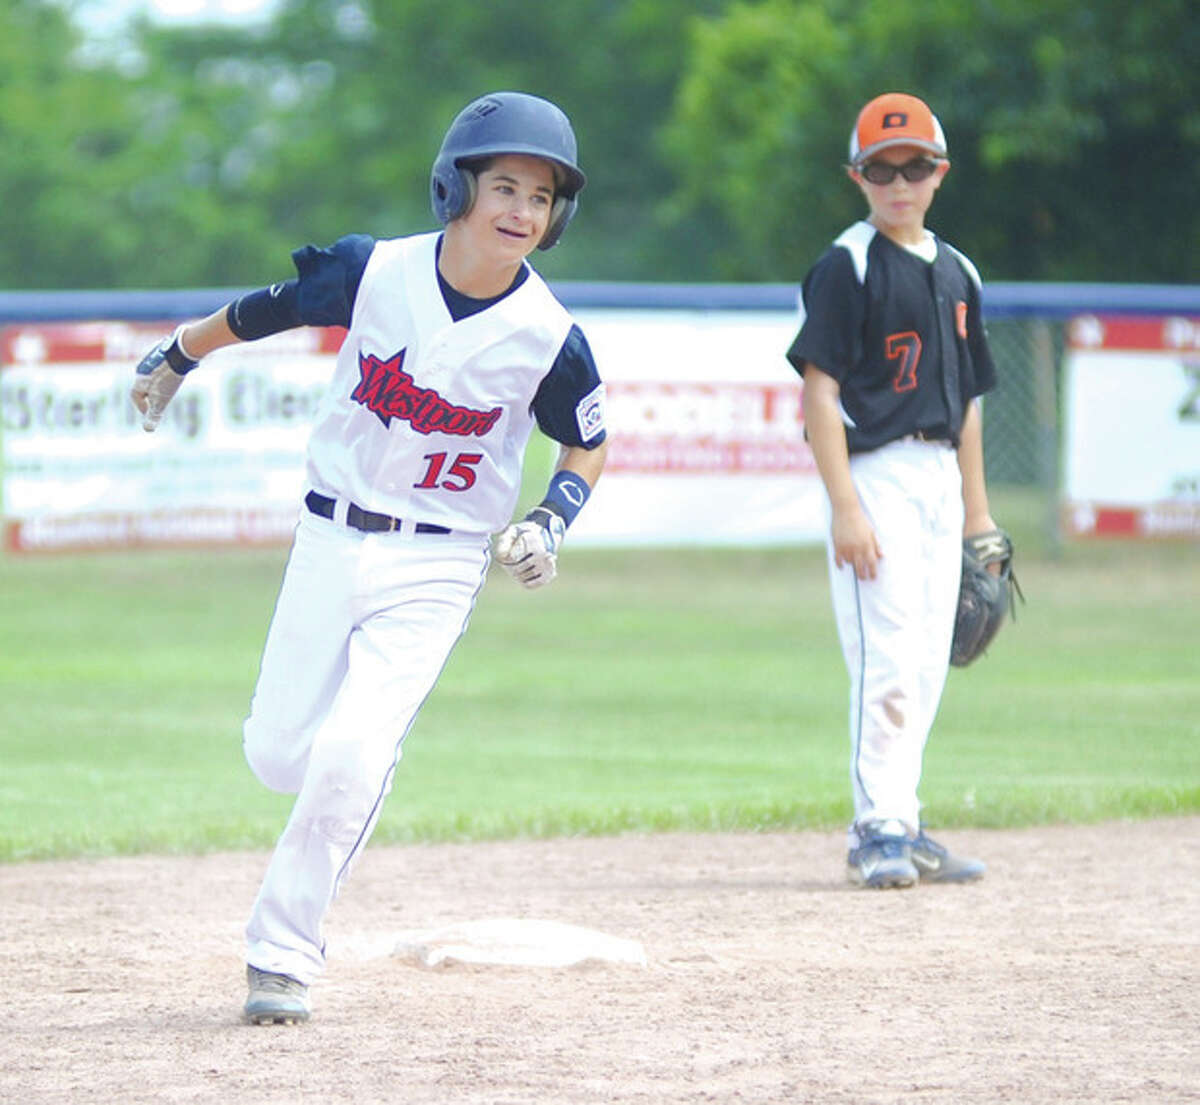 Hour photo/John Nash Ricky Offenberg of Westport rounds the bases after hitting a solo homer in the fourth inning of Saturday's Little League state sectional game against Orange. Offenberg's fourth-inning blast snapped a 3-3 tie and Westport went on to claim a 5-3 victory.